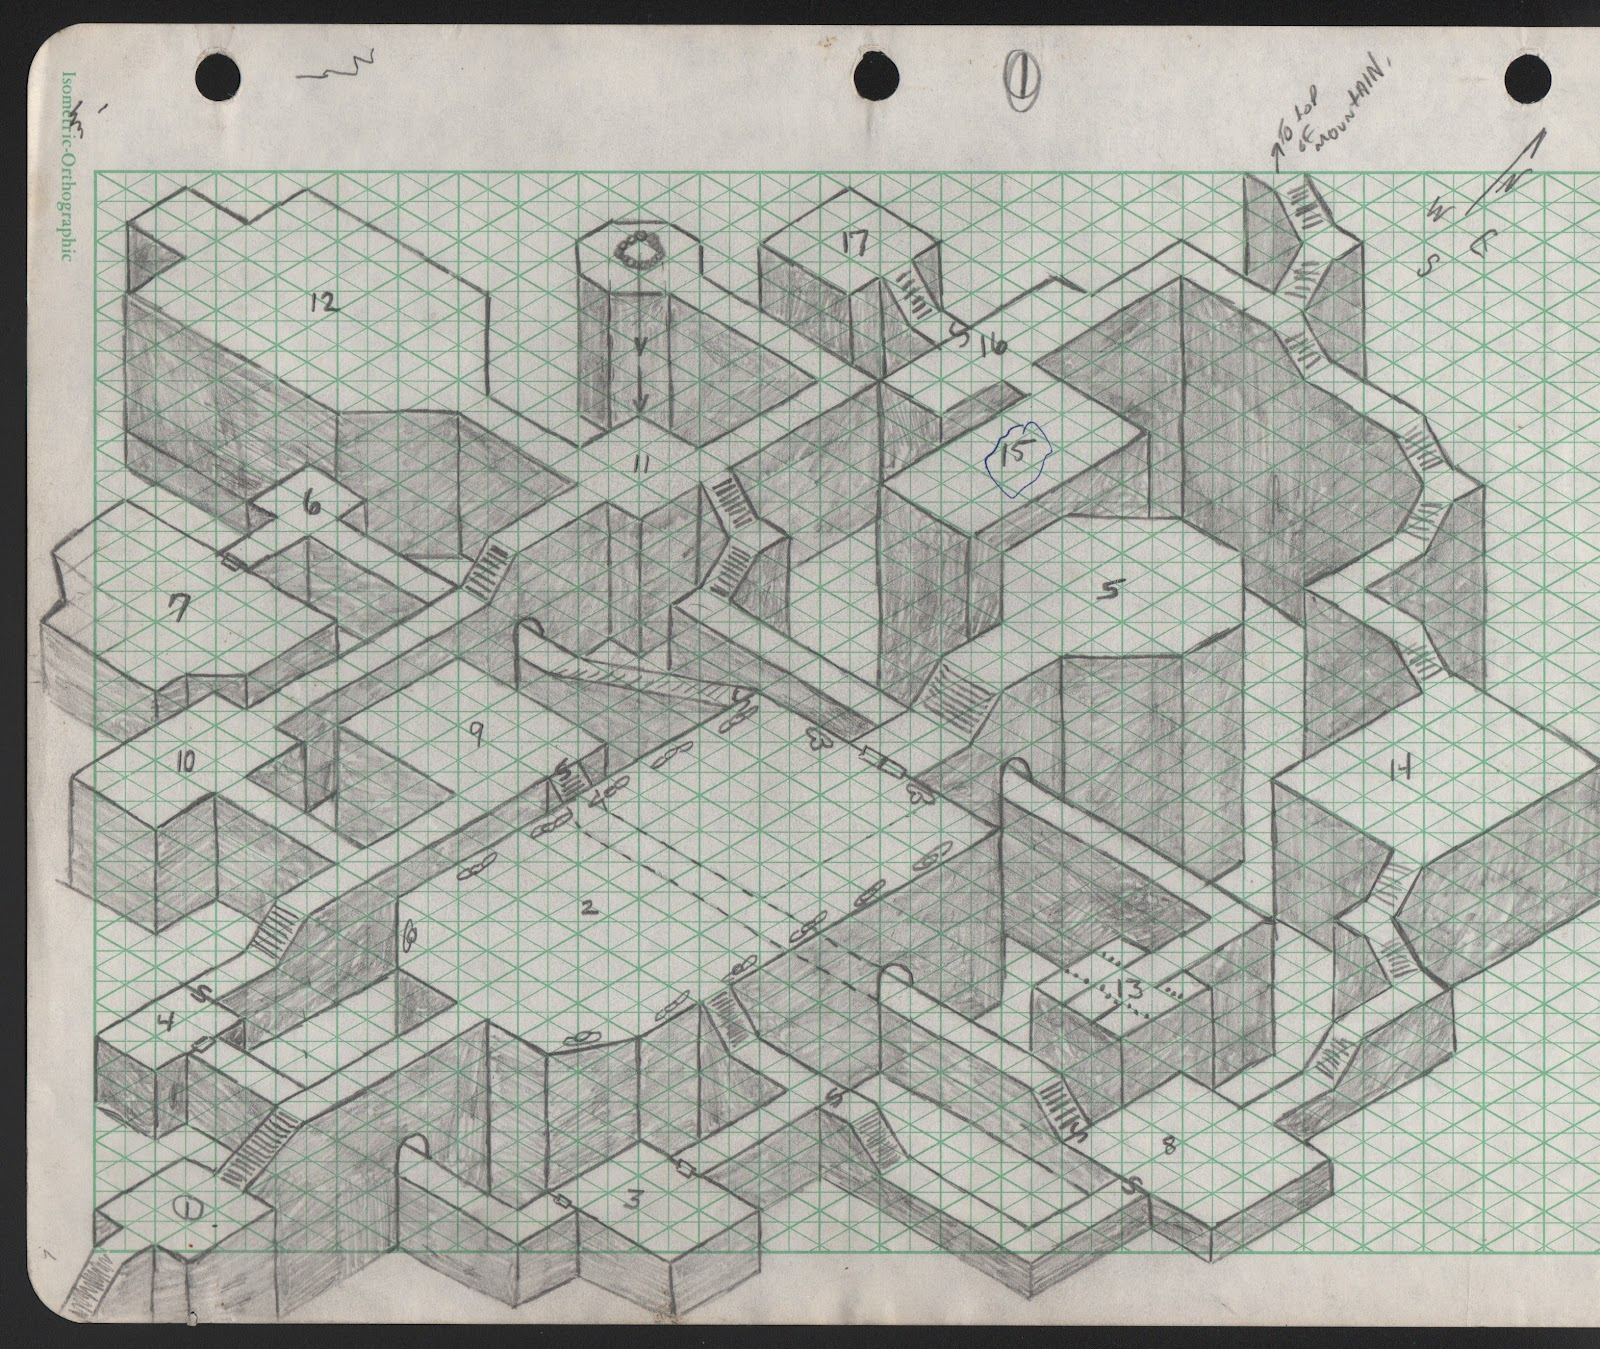 Isometrical dungeon map